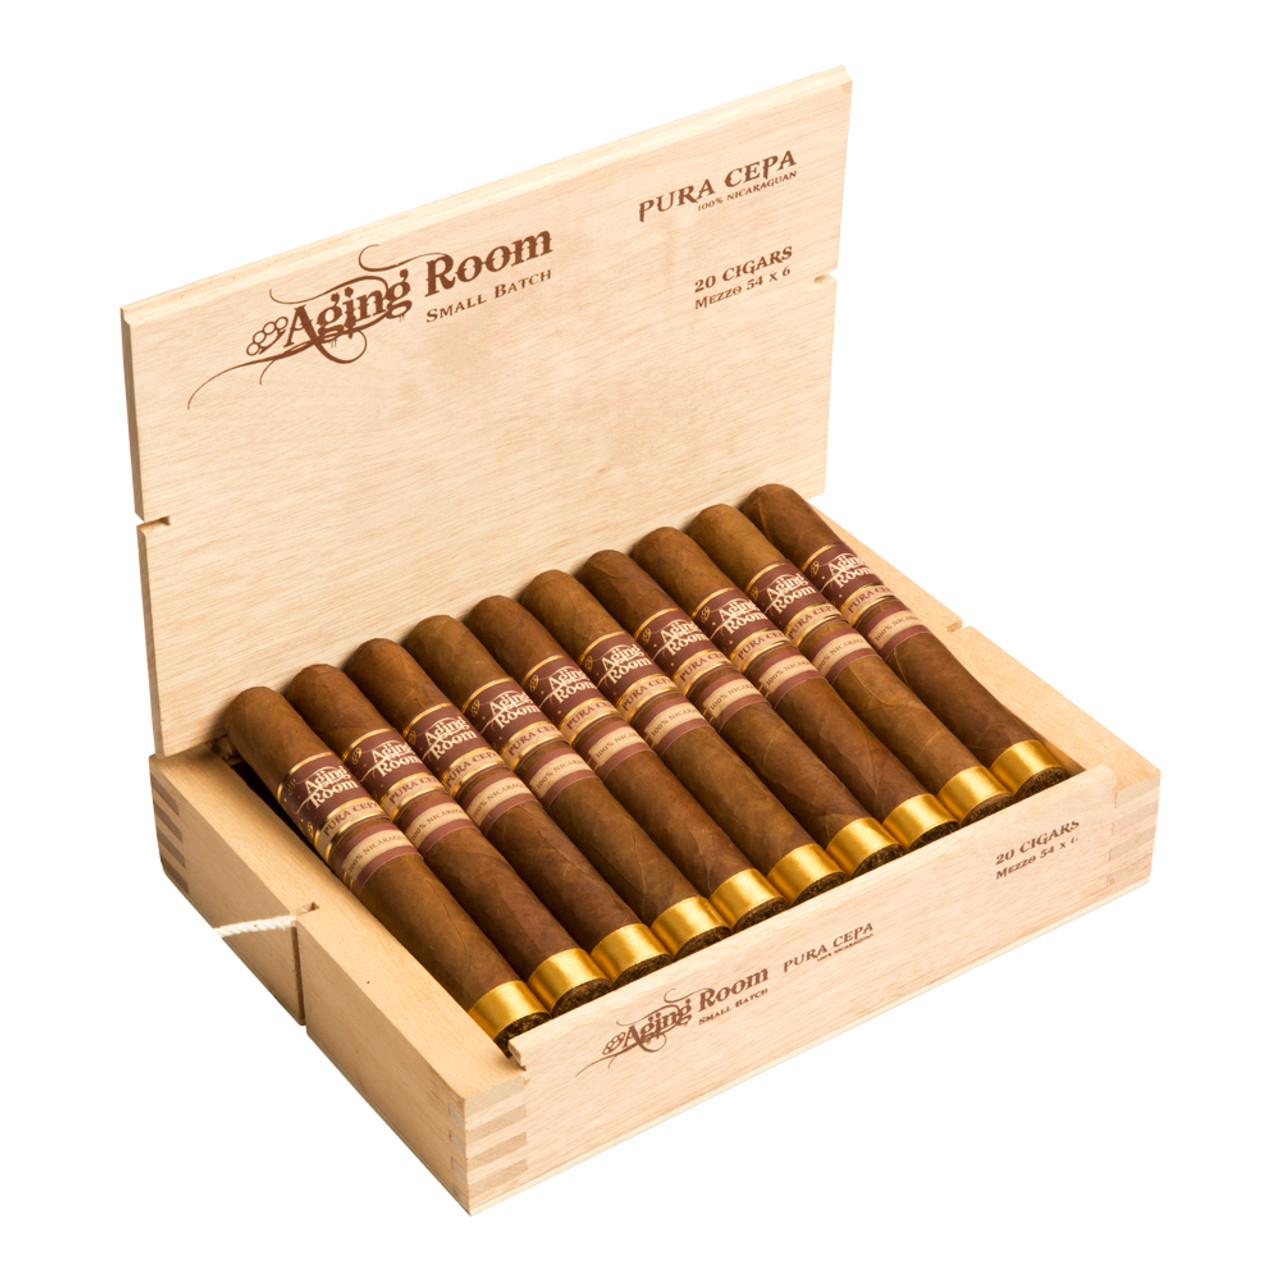 Aging Room Pura Cepa Rondo Cigars - 5 x 50 (Box of 20)